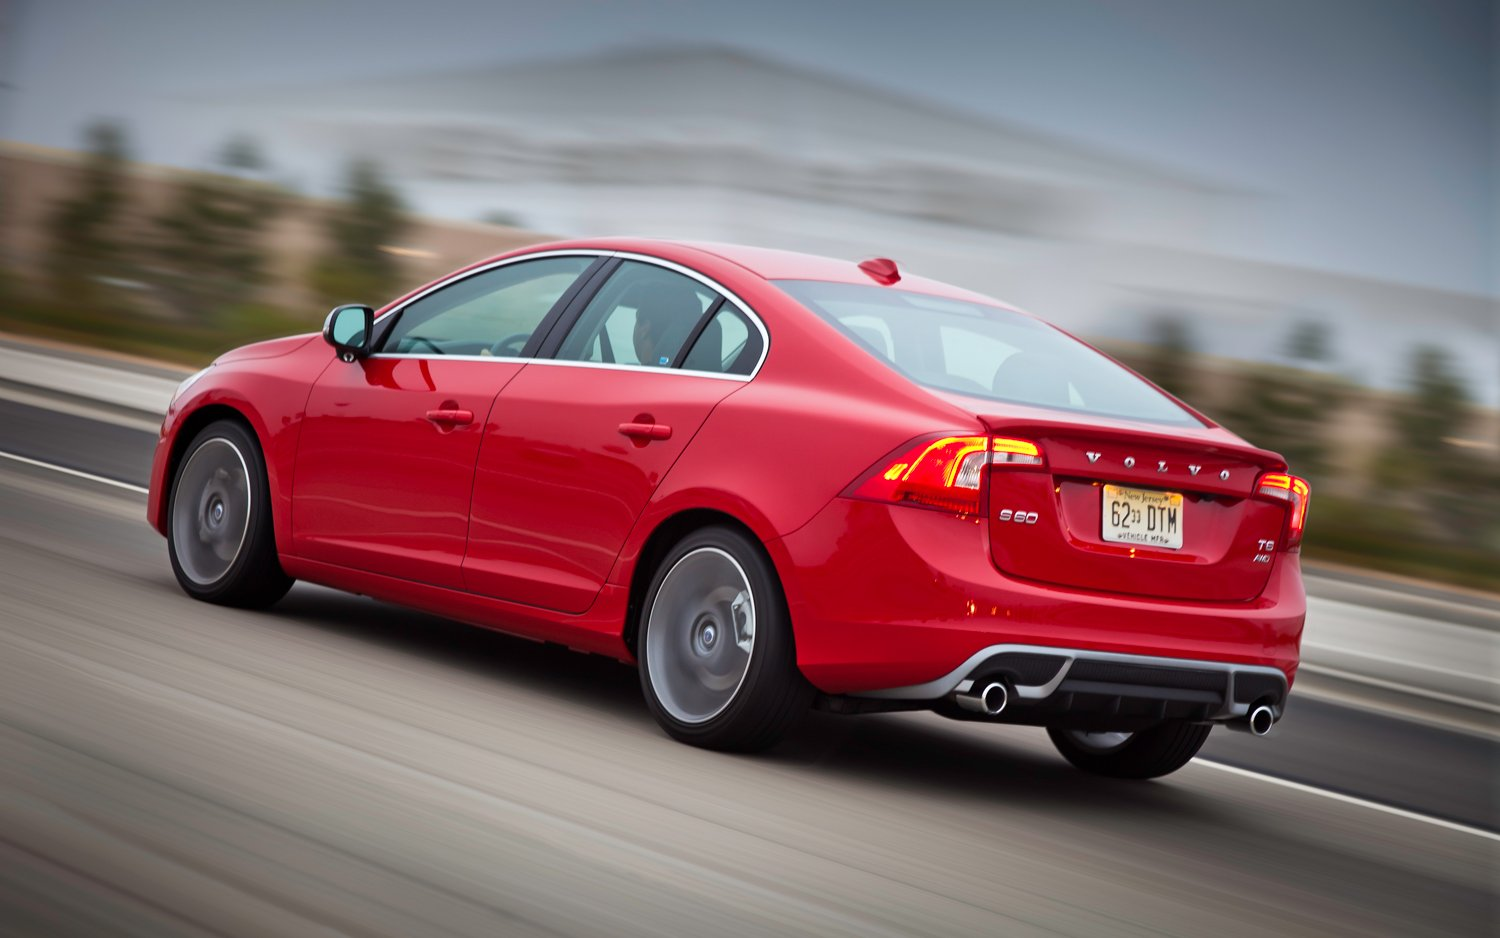 volvo s 60 2012 pictures #6